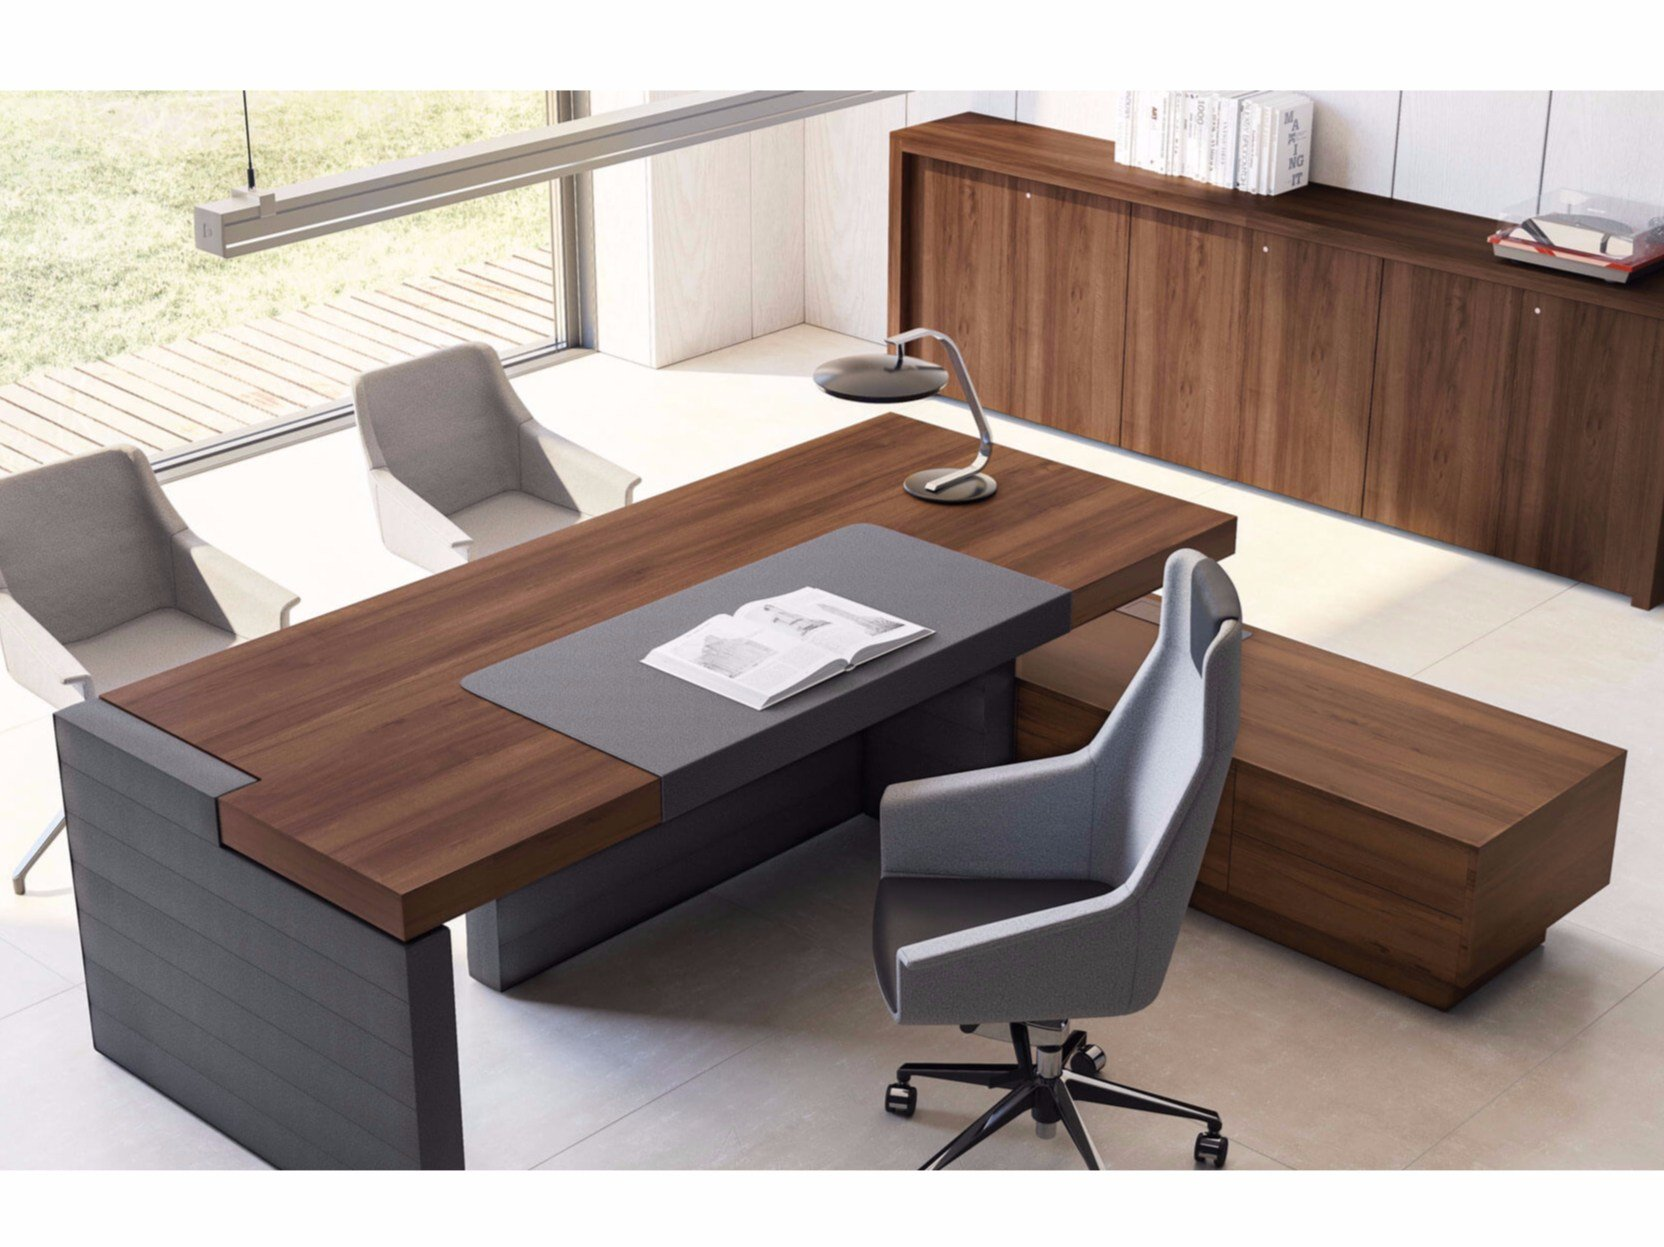 Jera office desk with shelves by las mobili for Oficinas minimalistas